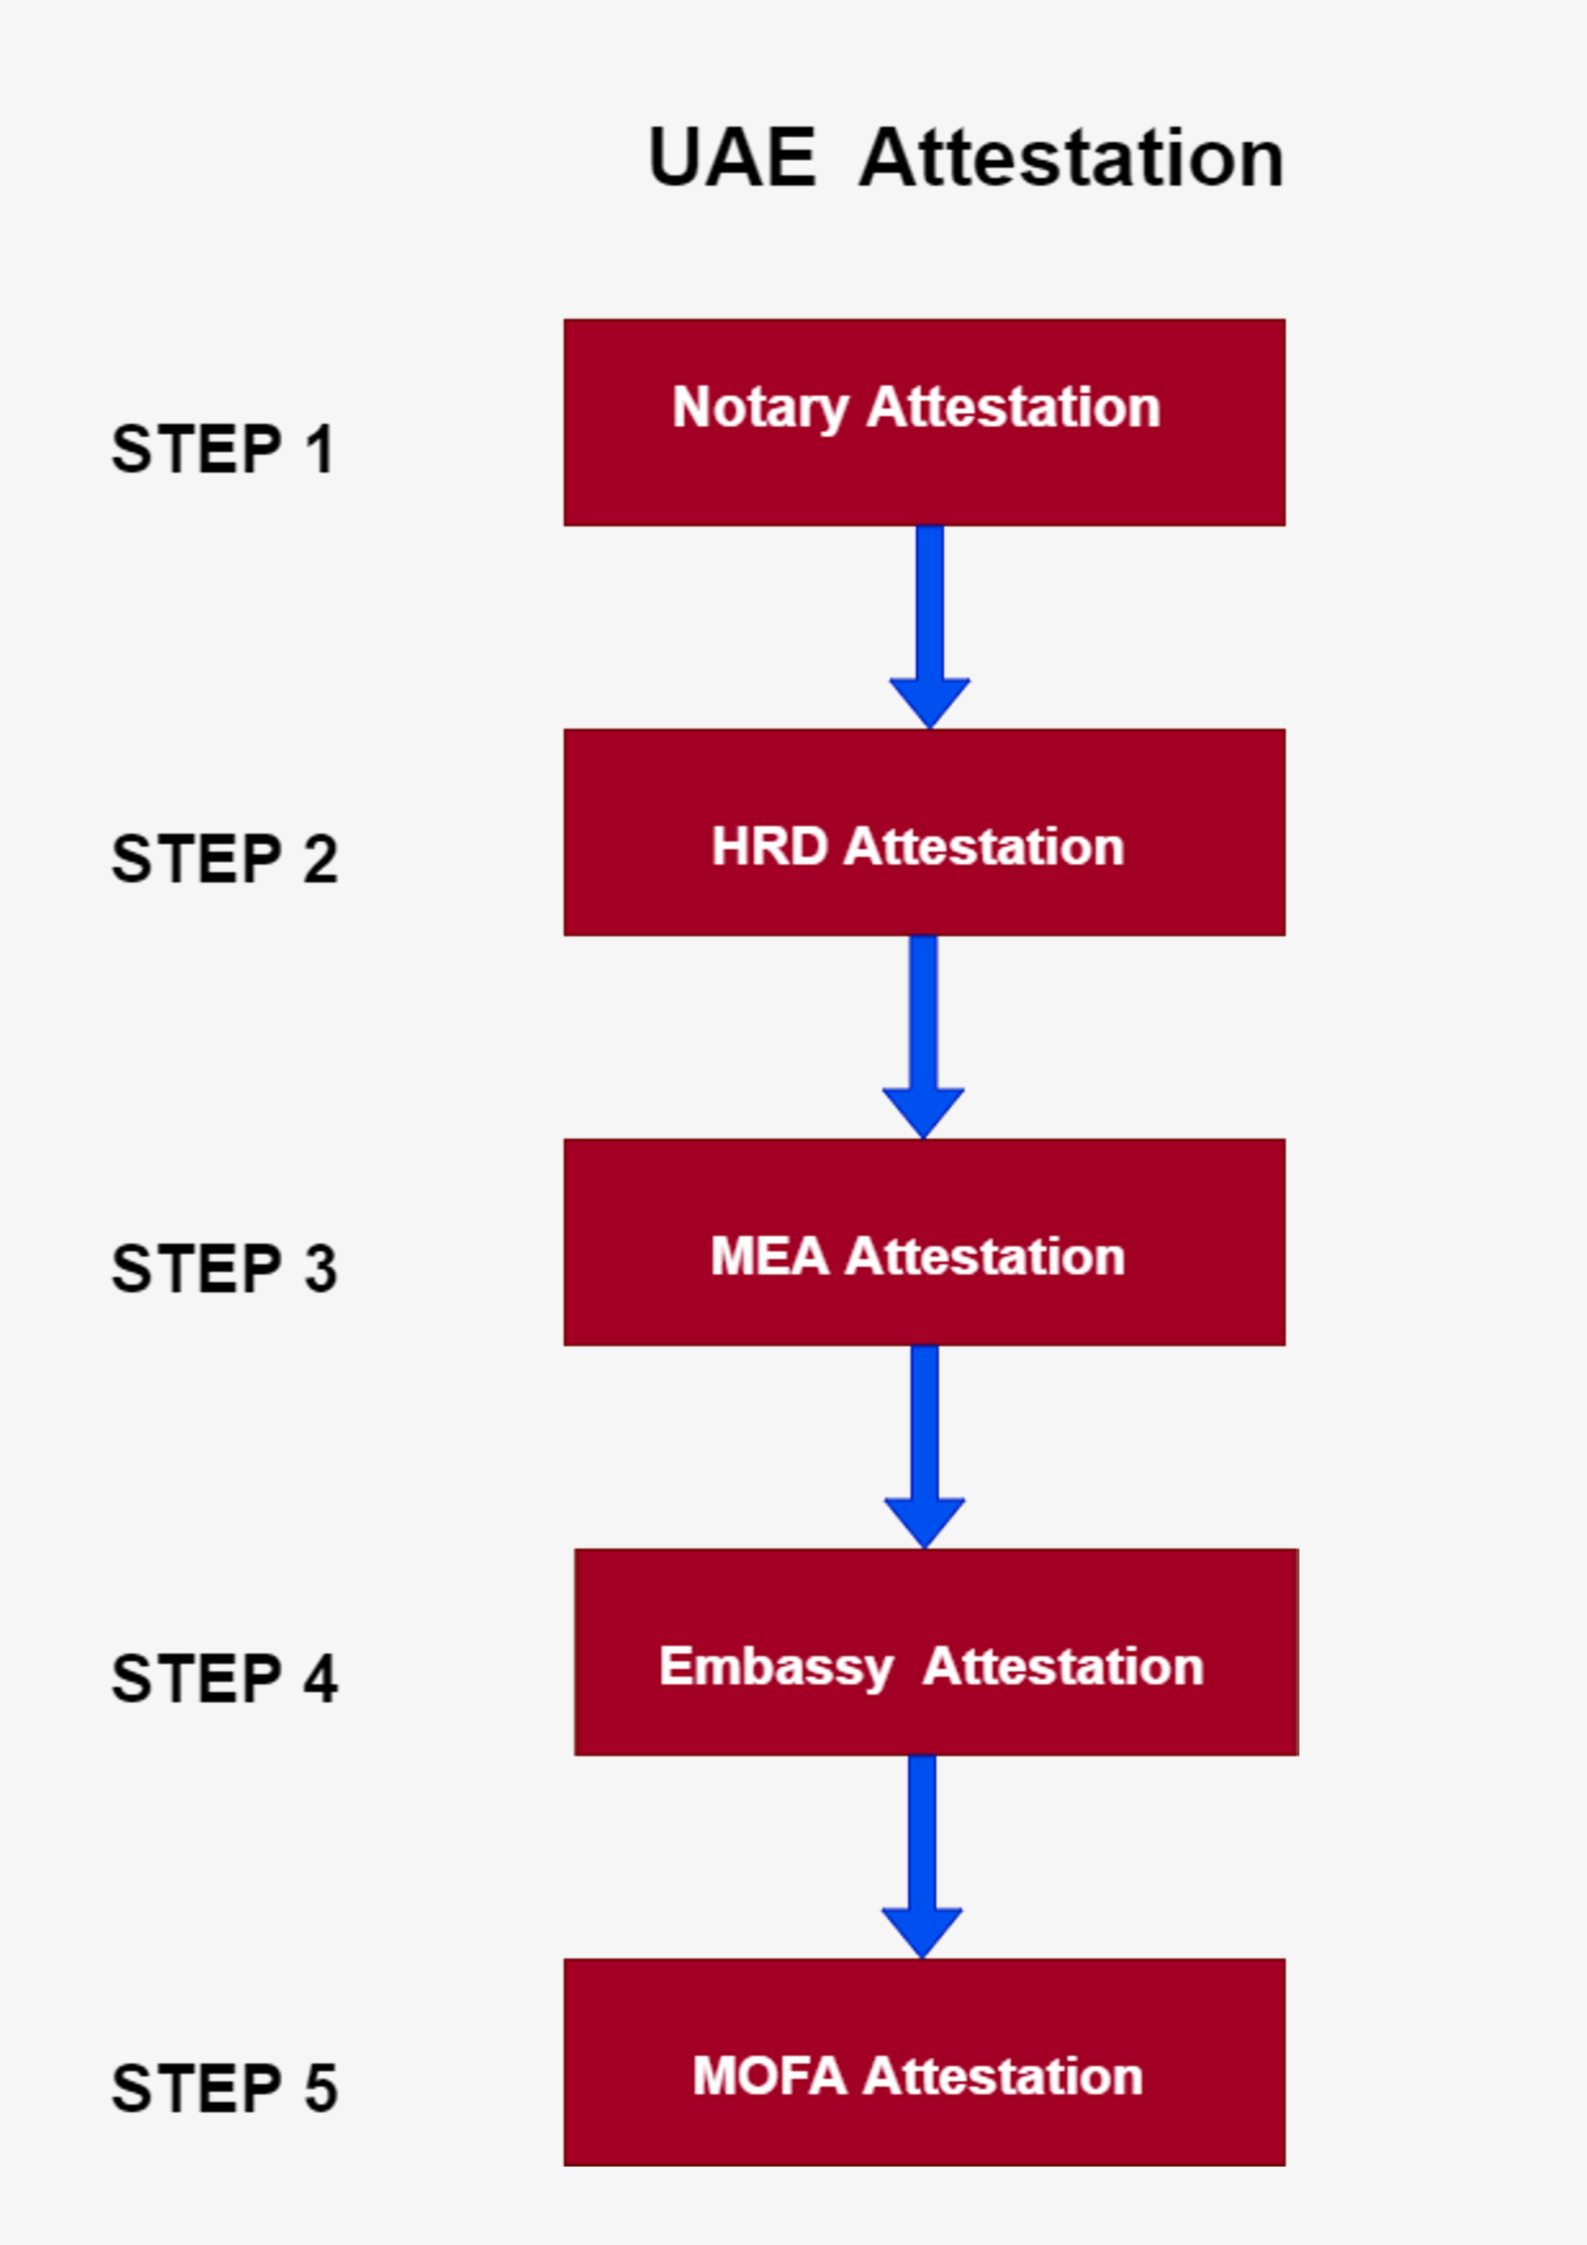 steps for UAE attestation process